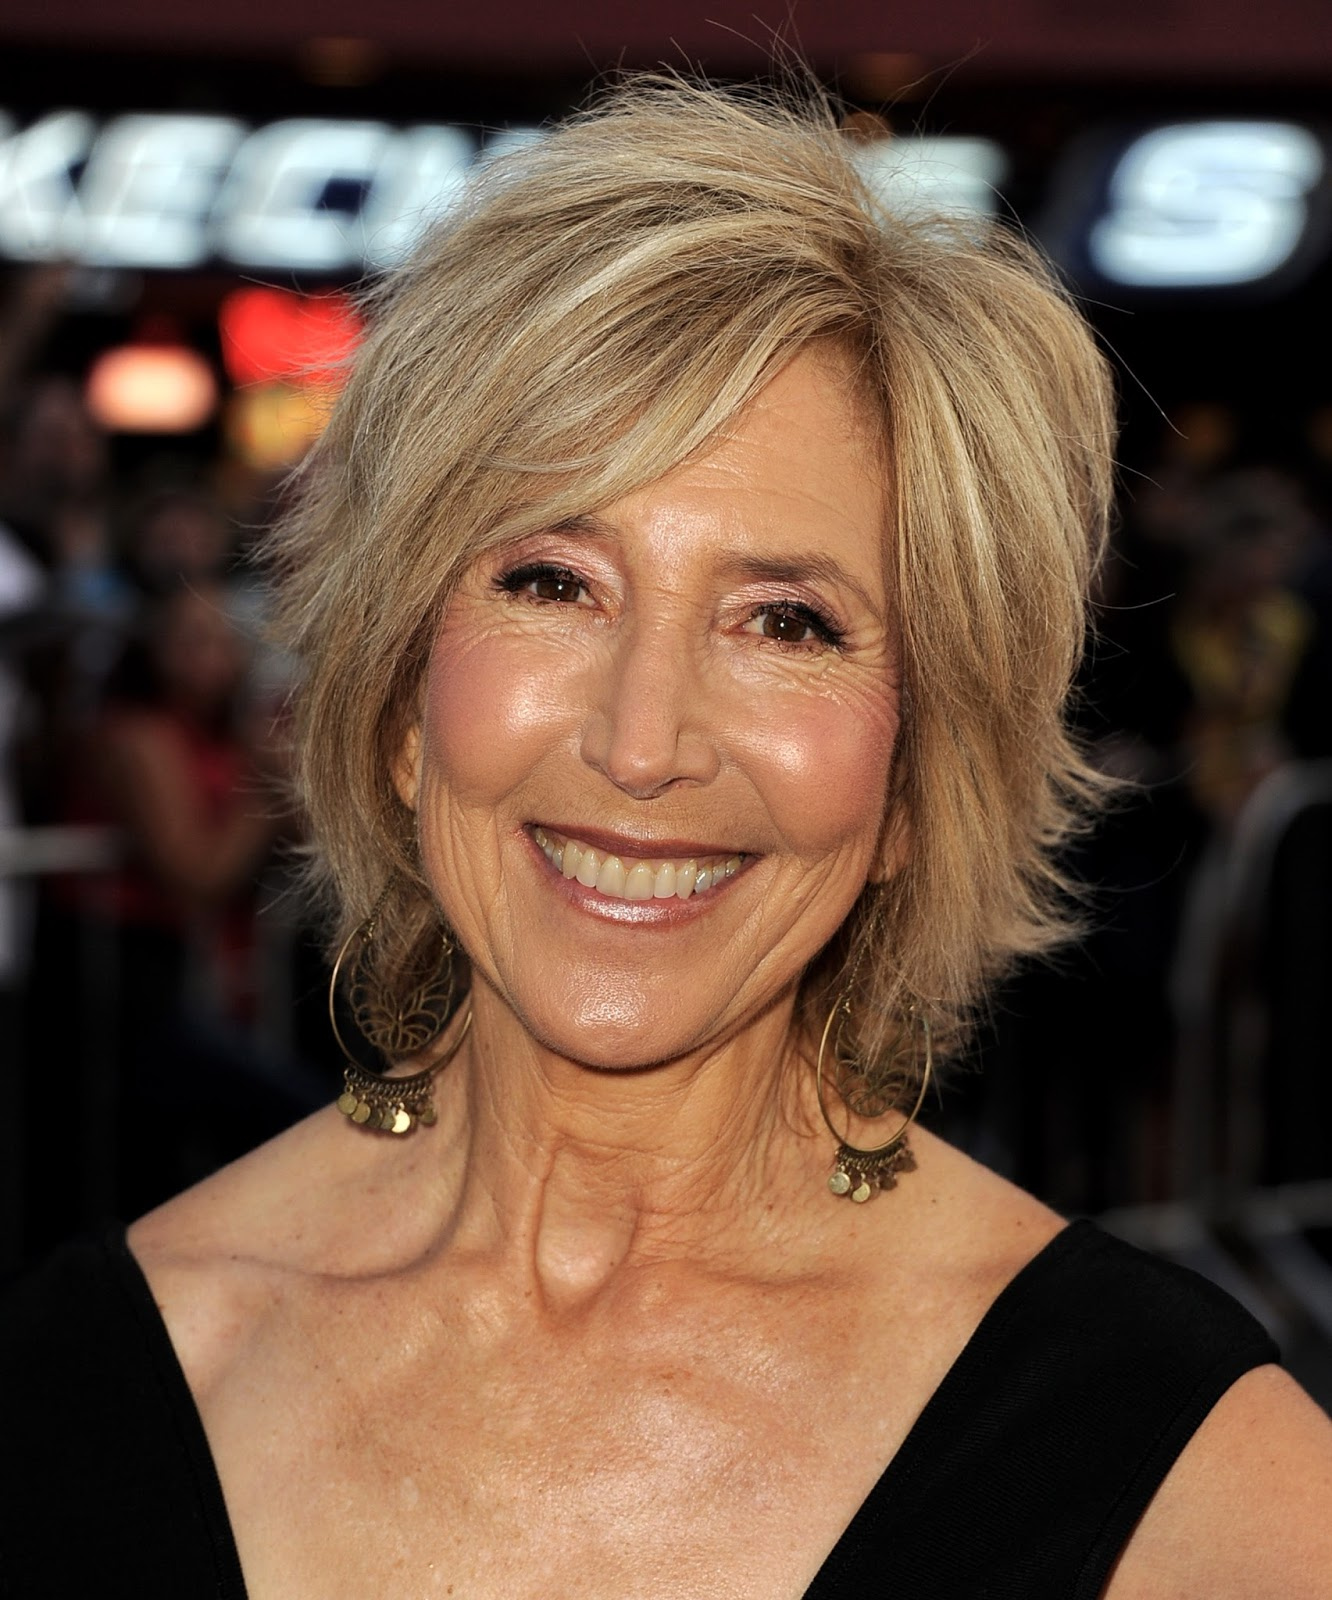 Lin Shaye naked (96 photo), Pussy, Sideboobs, Selfie, cleavage 2017